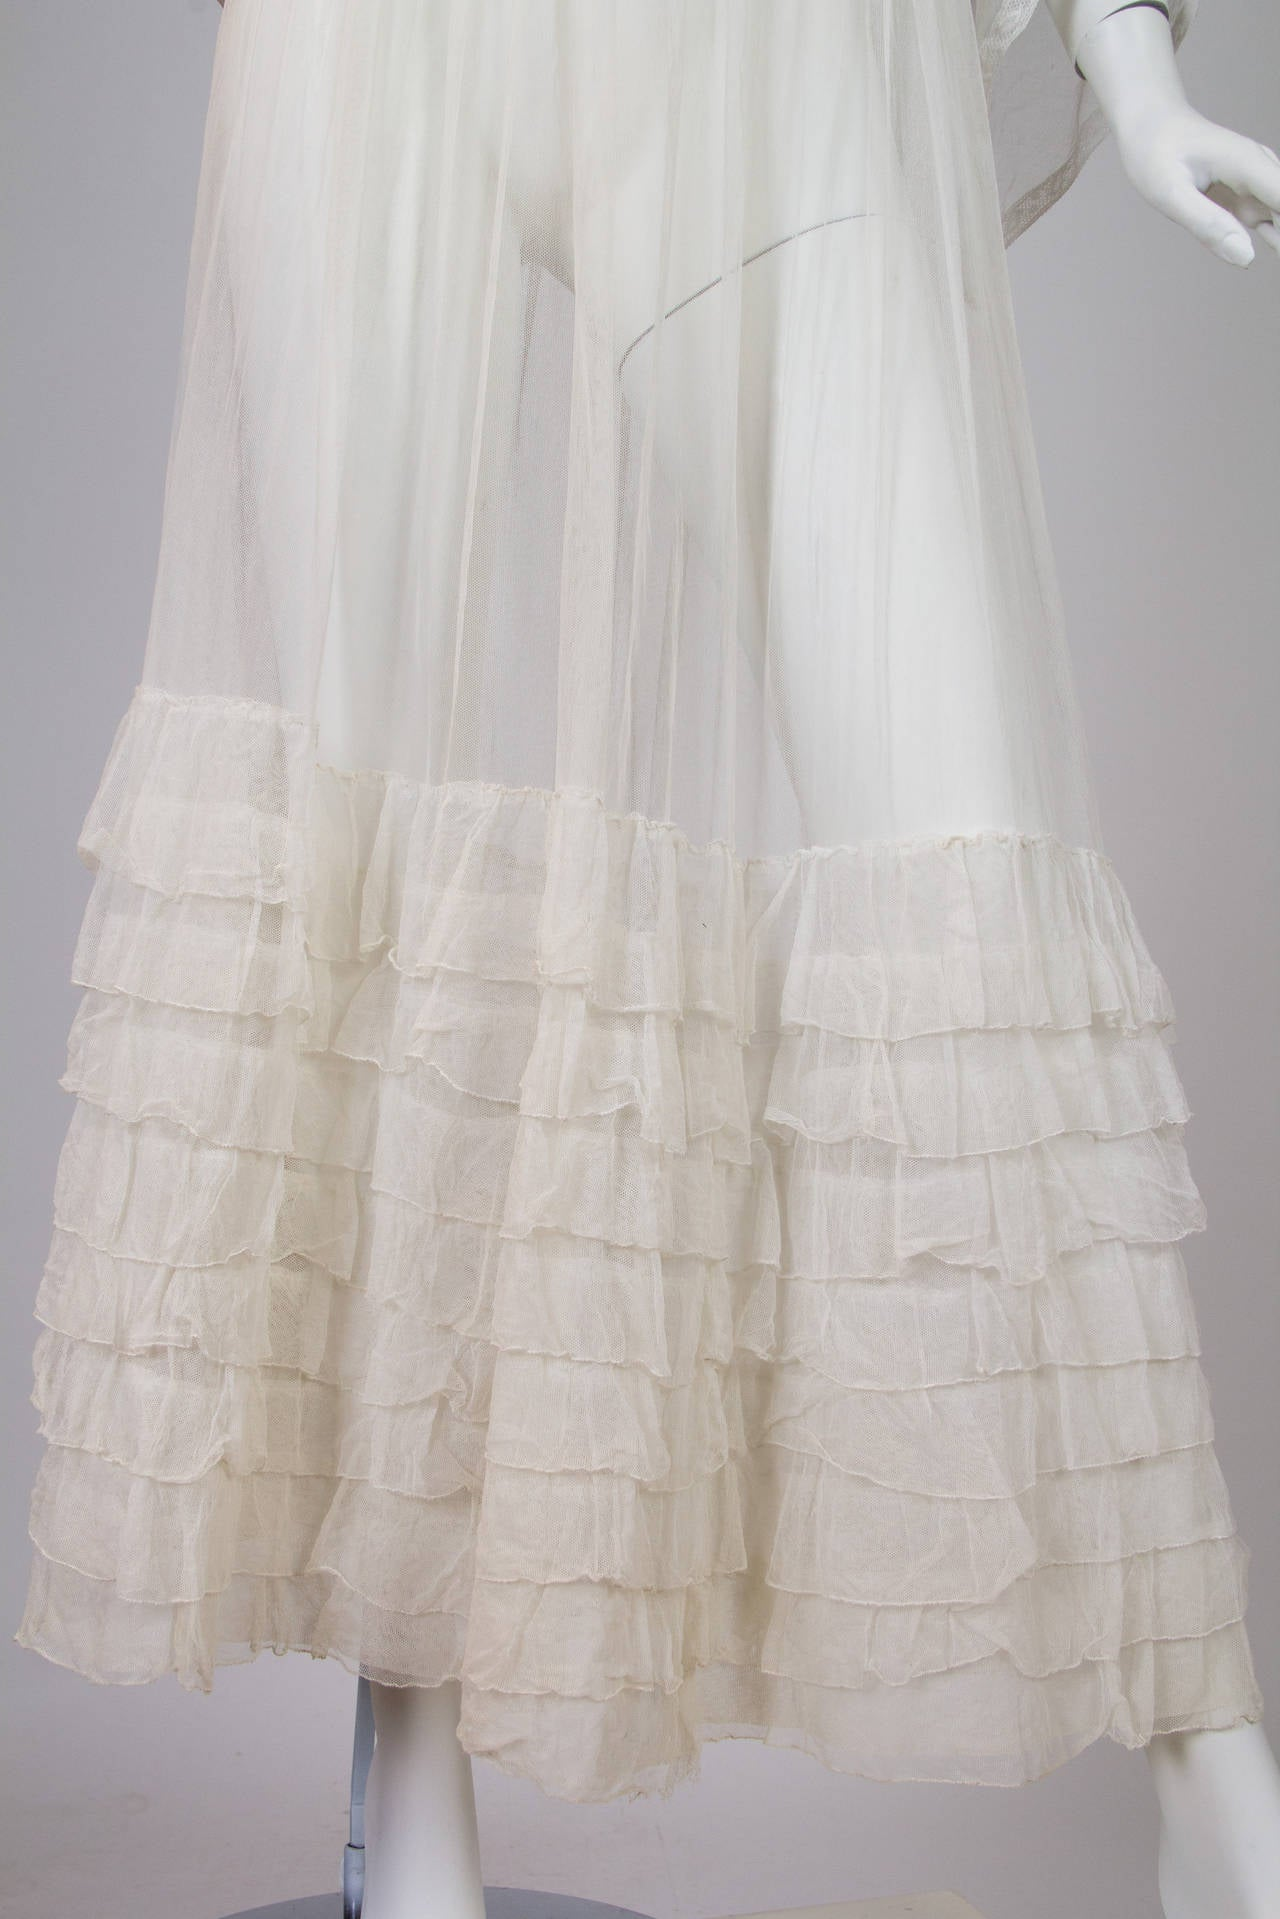 1910s Cotton Net Dress with Irish crochet and lace trim 8